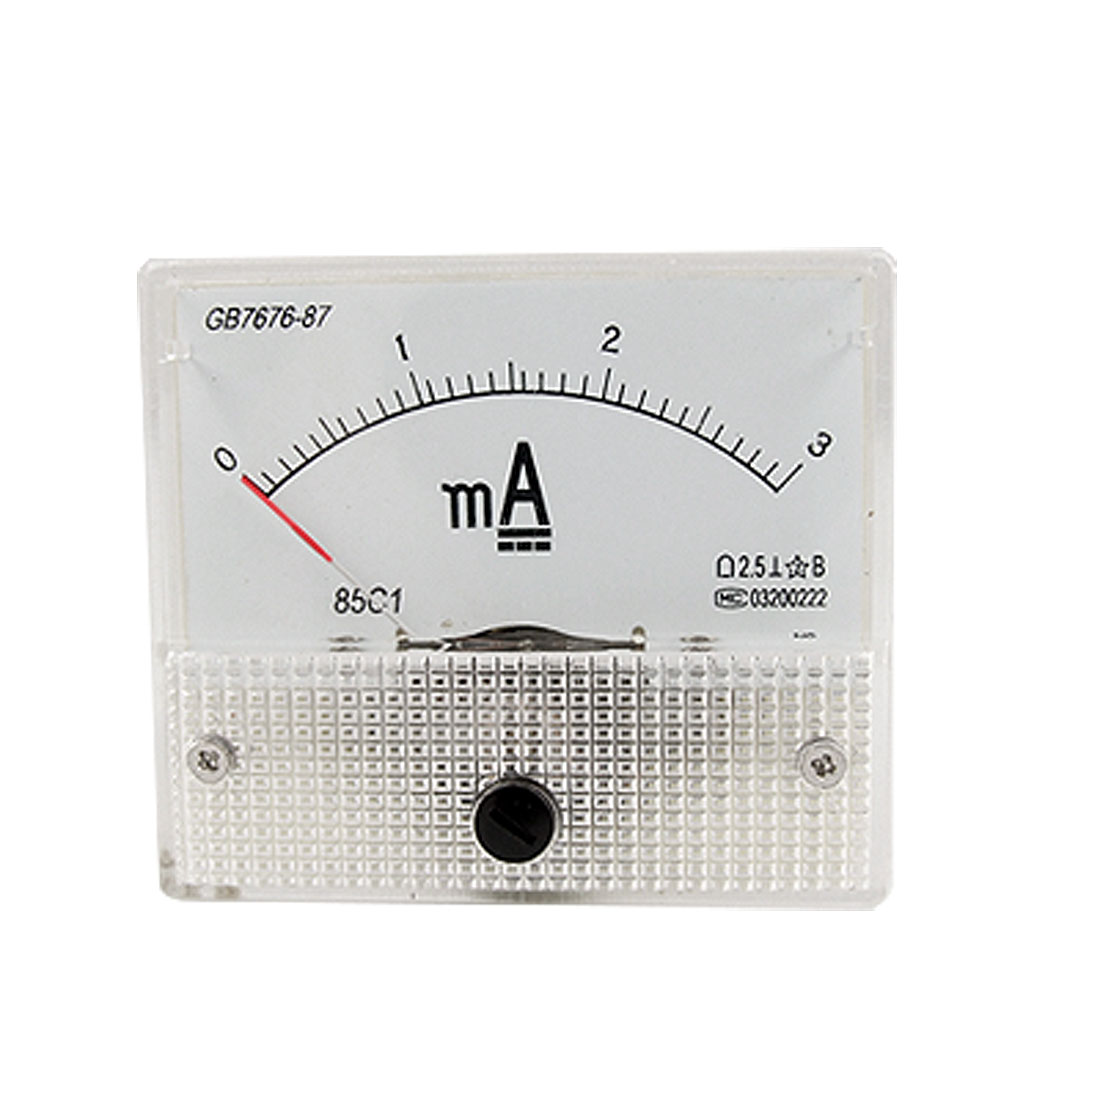 DC 3mA Analog Current Panel Meter Ammeter Gauge 85C1